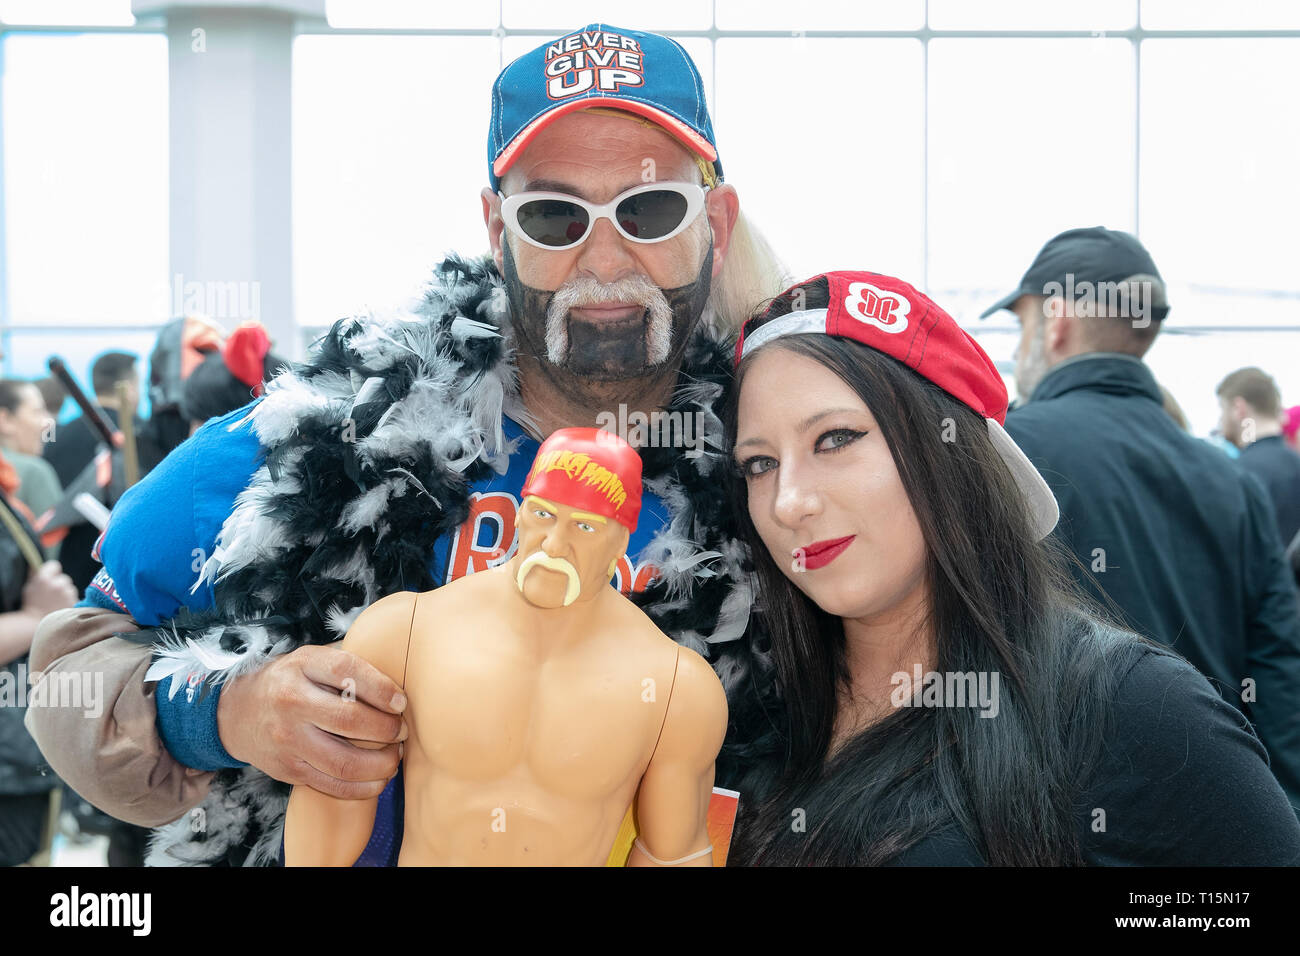 Birmingham, UK. Saturday 23 March 2019. Cosplayer seen in character  as Hulk Hogan on the 1st day of the MCM Comic Con Birmingham at the NEC  , © Jason Richardson / Alamy Live News - Stock Image